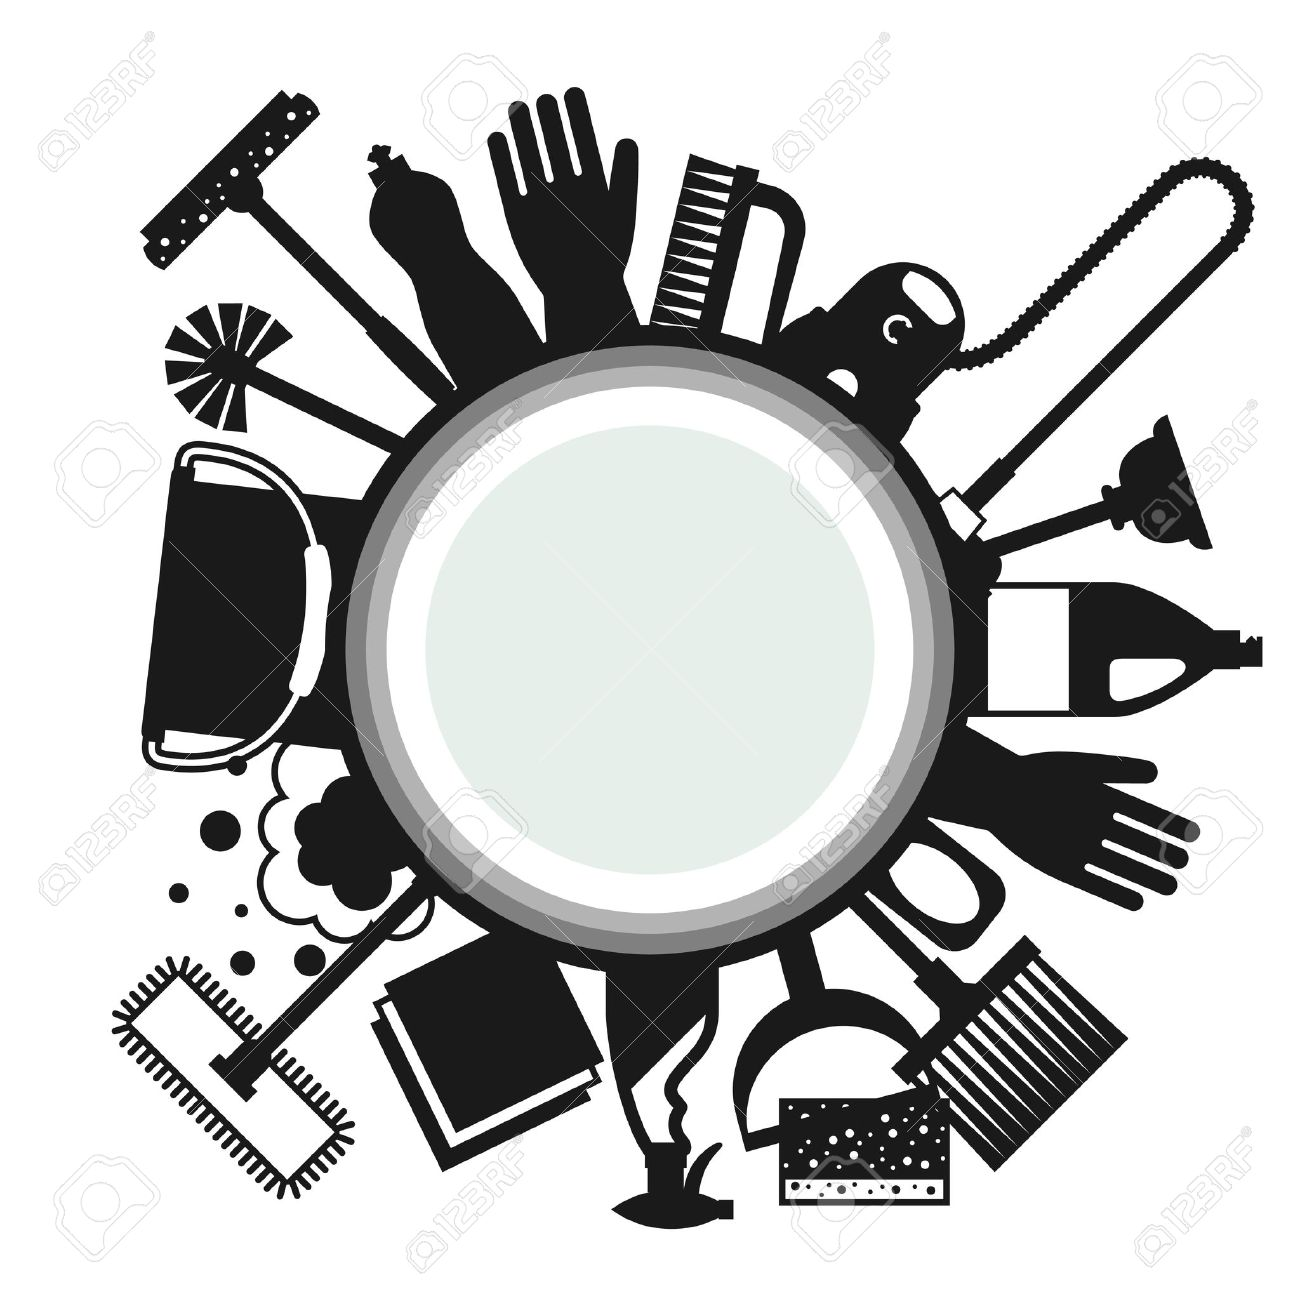 house mop cliparts stock vector and royalty house mop house mop housekeeping background cleaning icons image can be used on advertising booklets